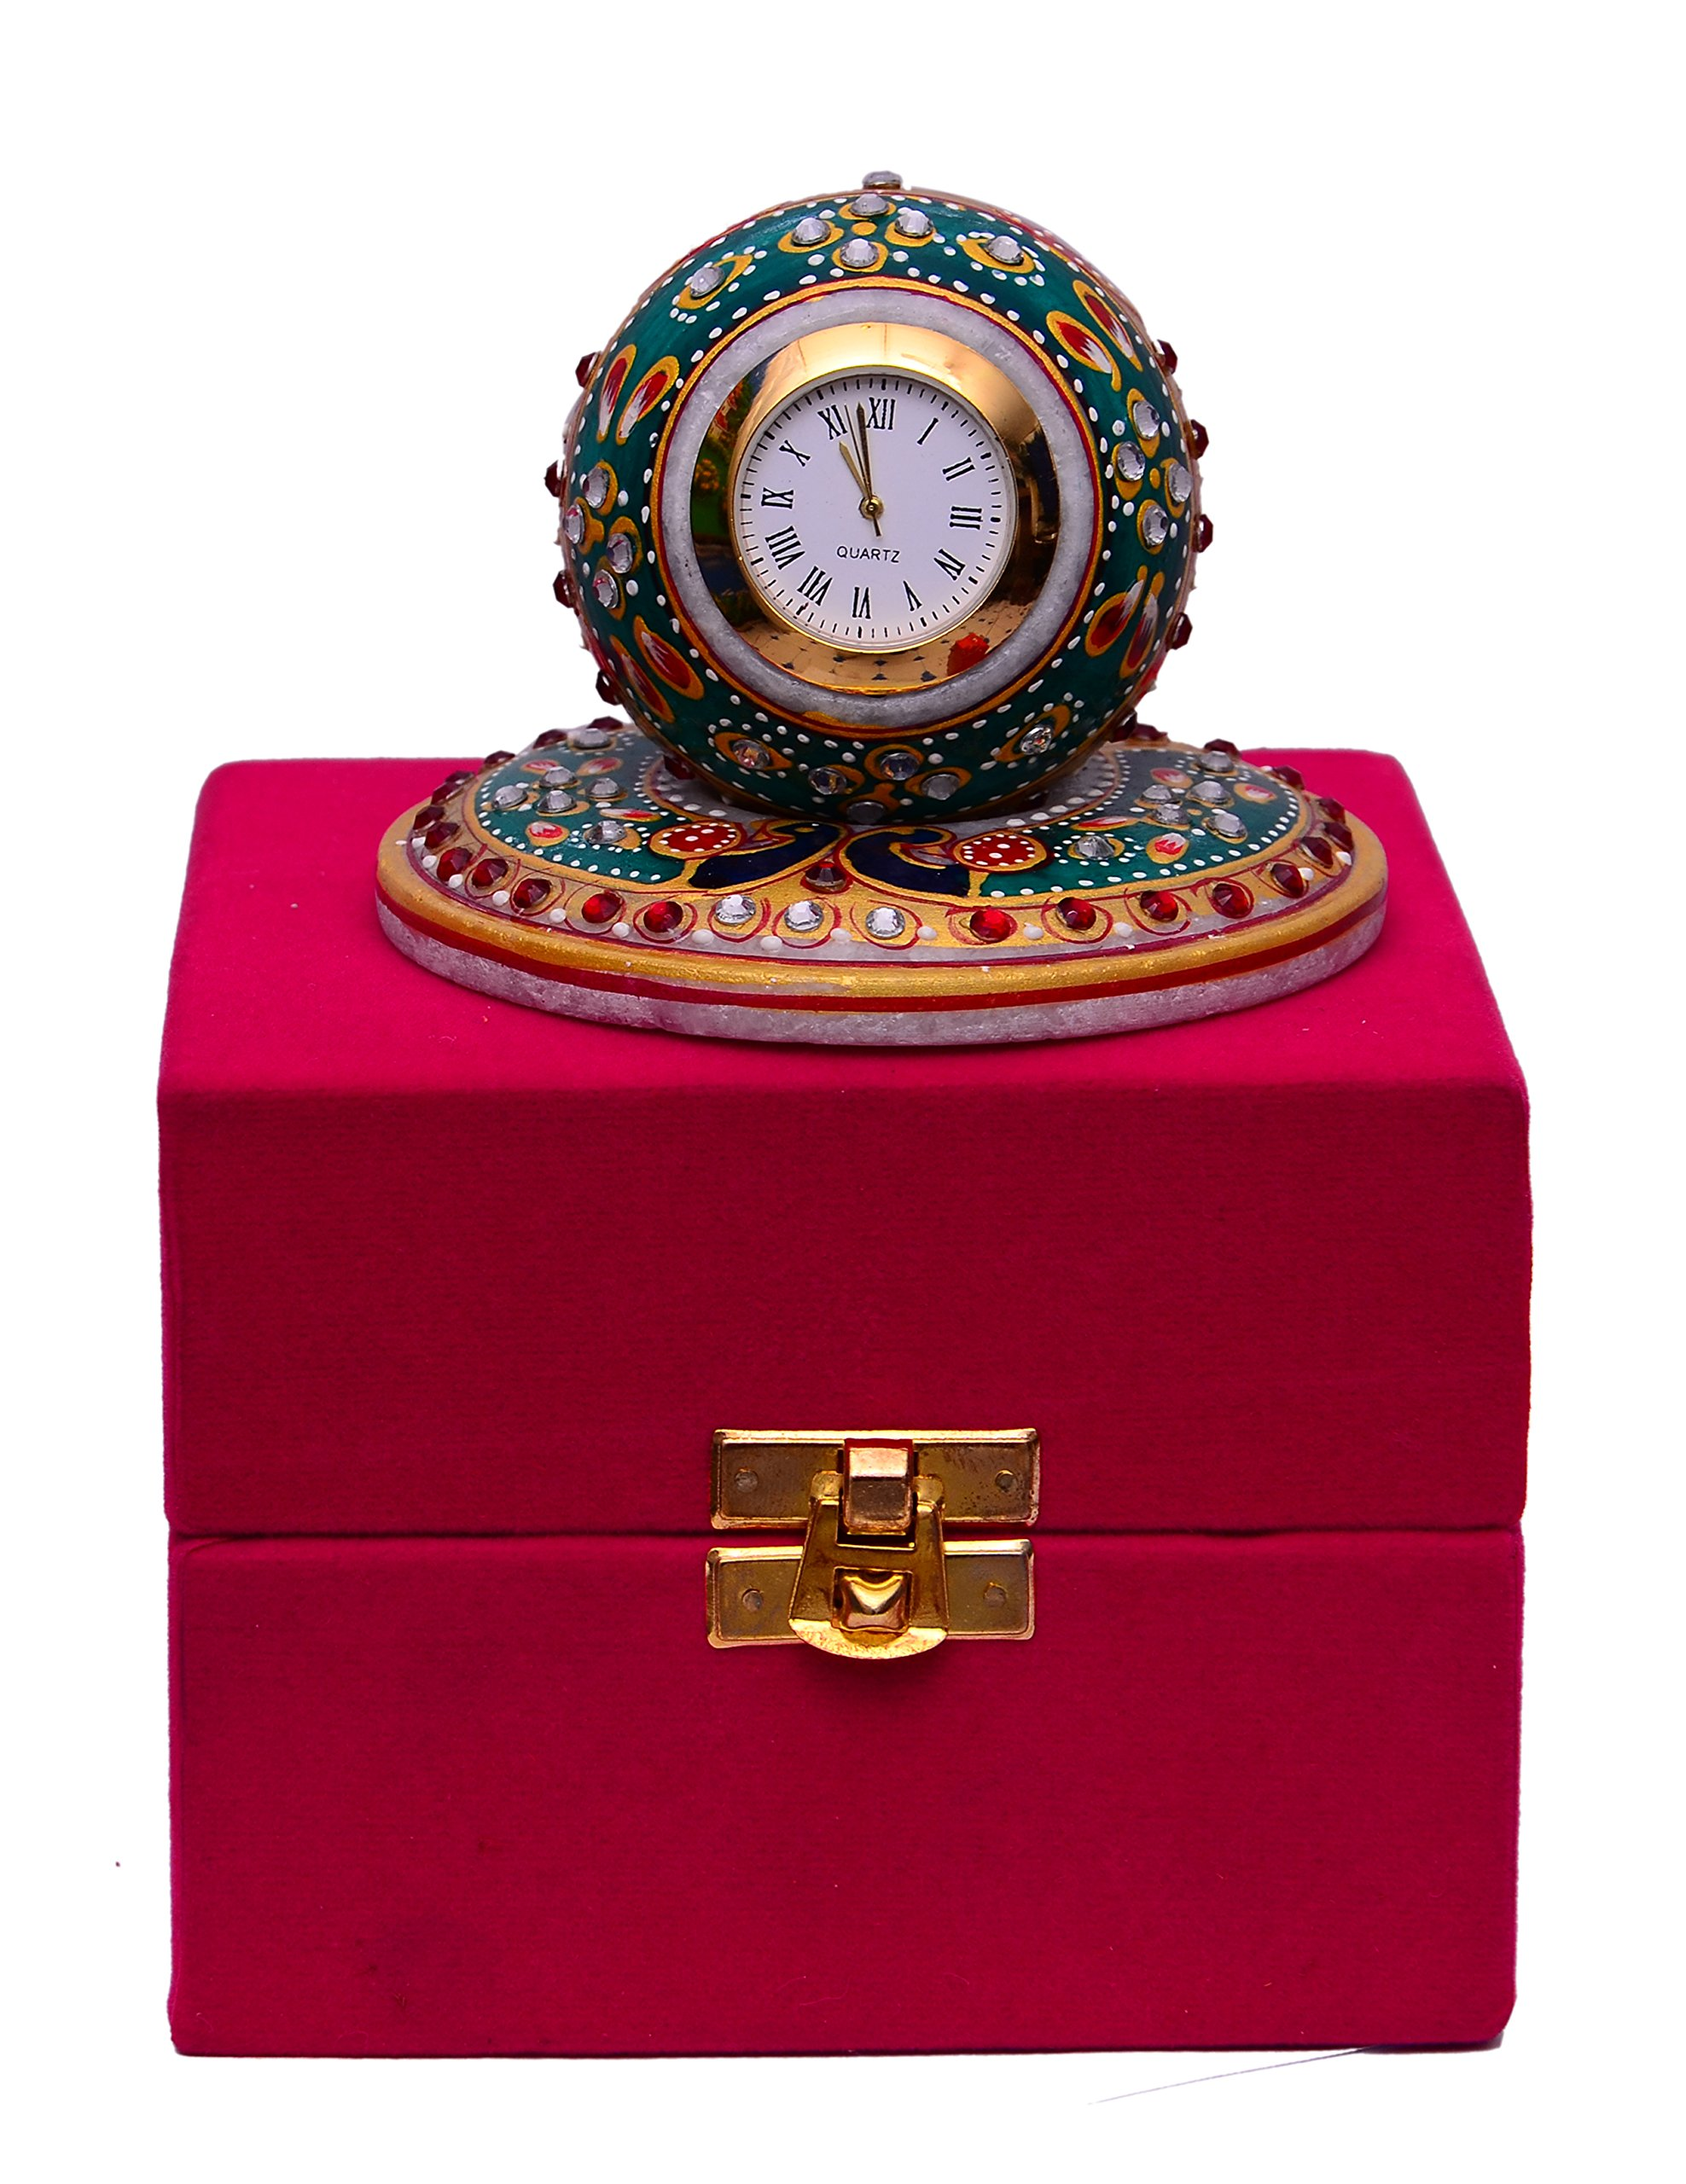 Purpledip Handmade Gift Hamper For Any Occasion - Marble Clock With Colorful Stones & Peacock Design In Velvet Gift Box (10471)